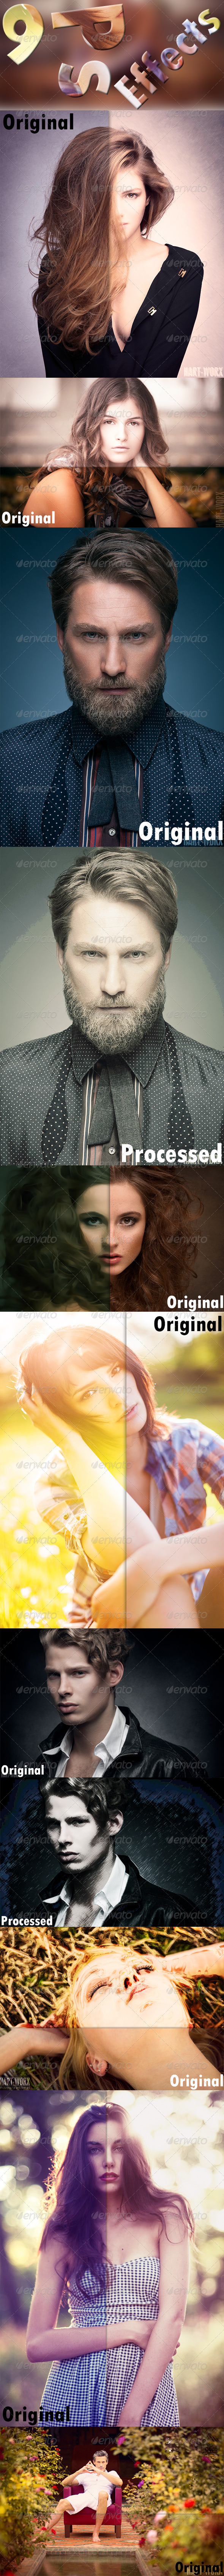 GraphicRiver 9 Photoshop Effects 7922073